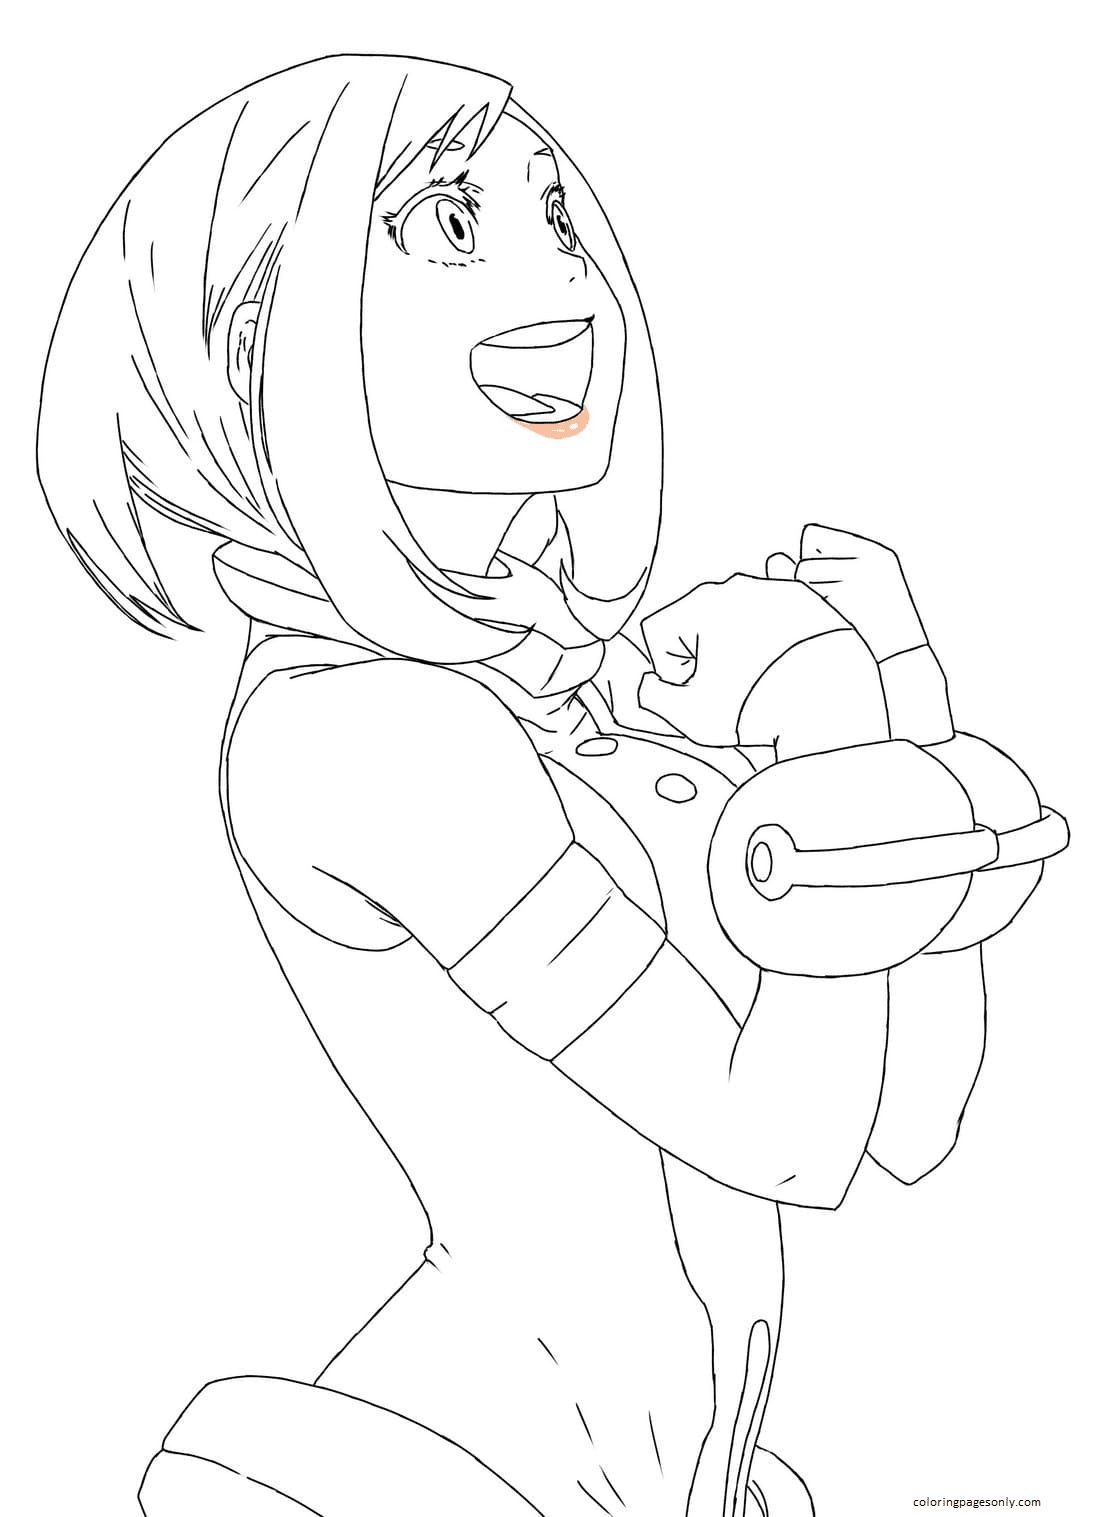 Anime Uravity Coloring Page